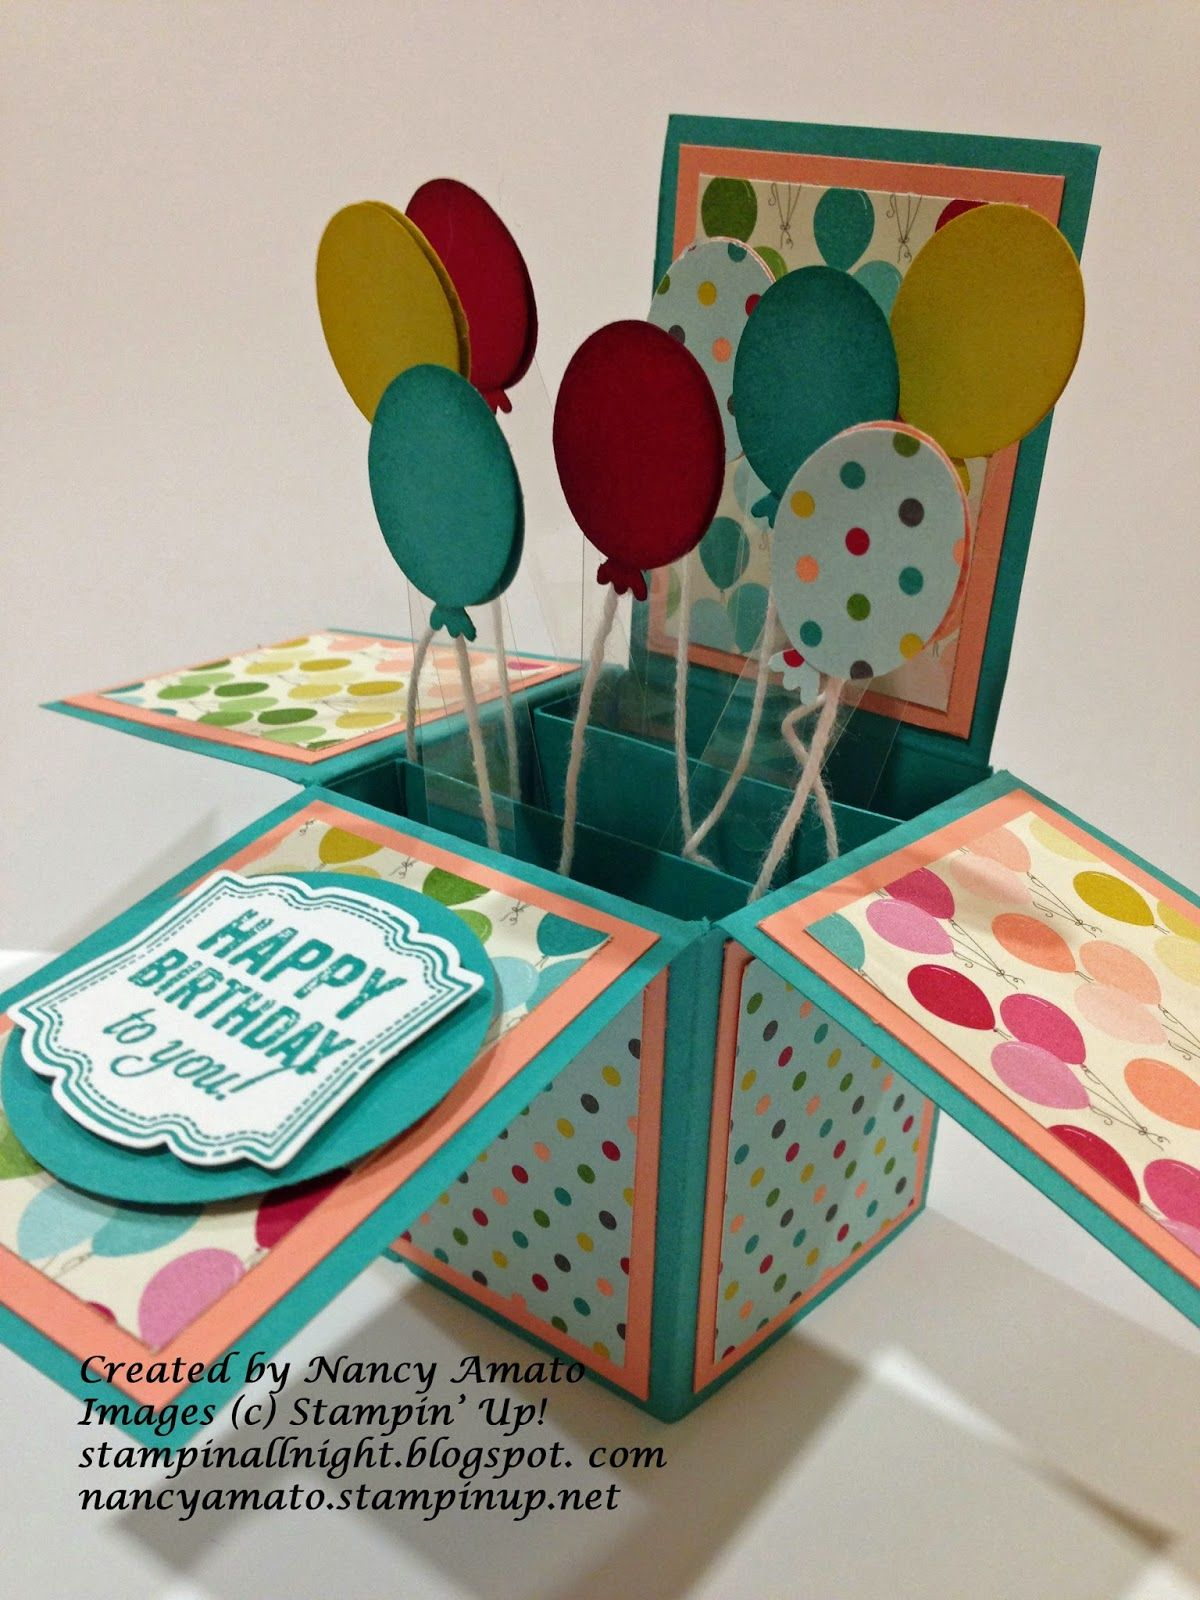 I First Saw These Cute Cards In A Box On Pinterest And Just Had To Give Them Try Stampin Up